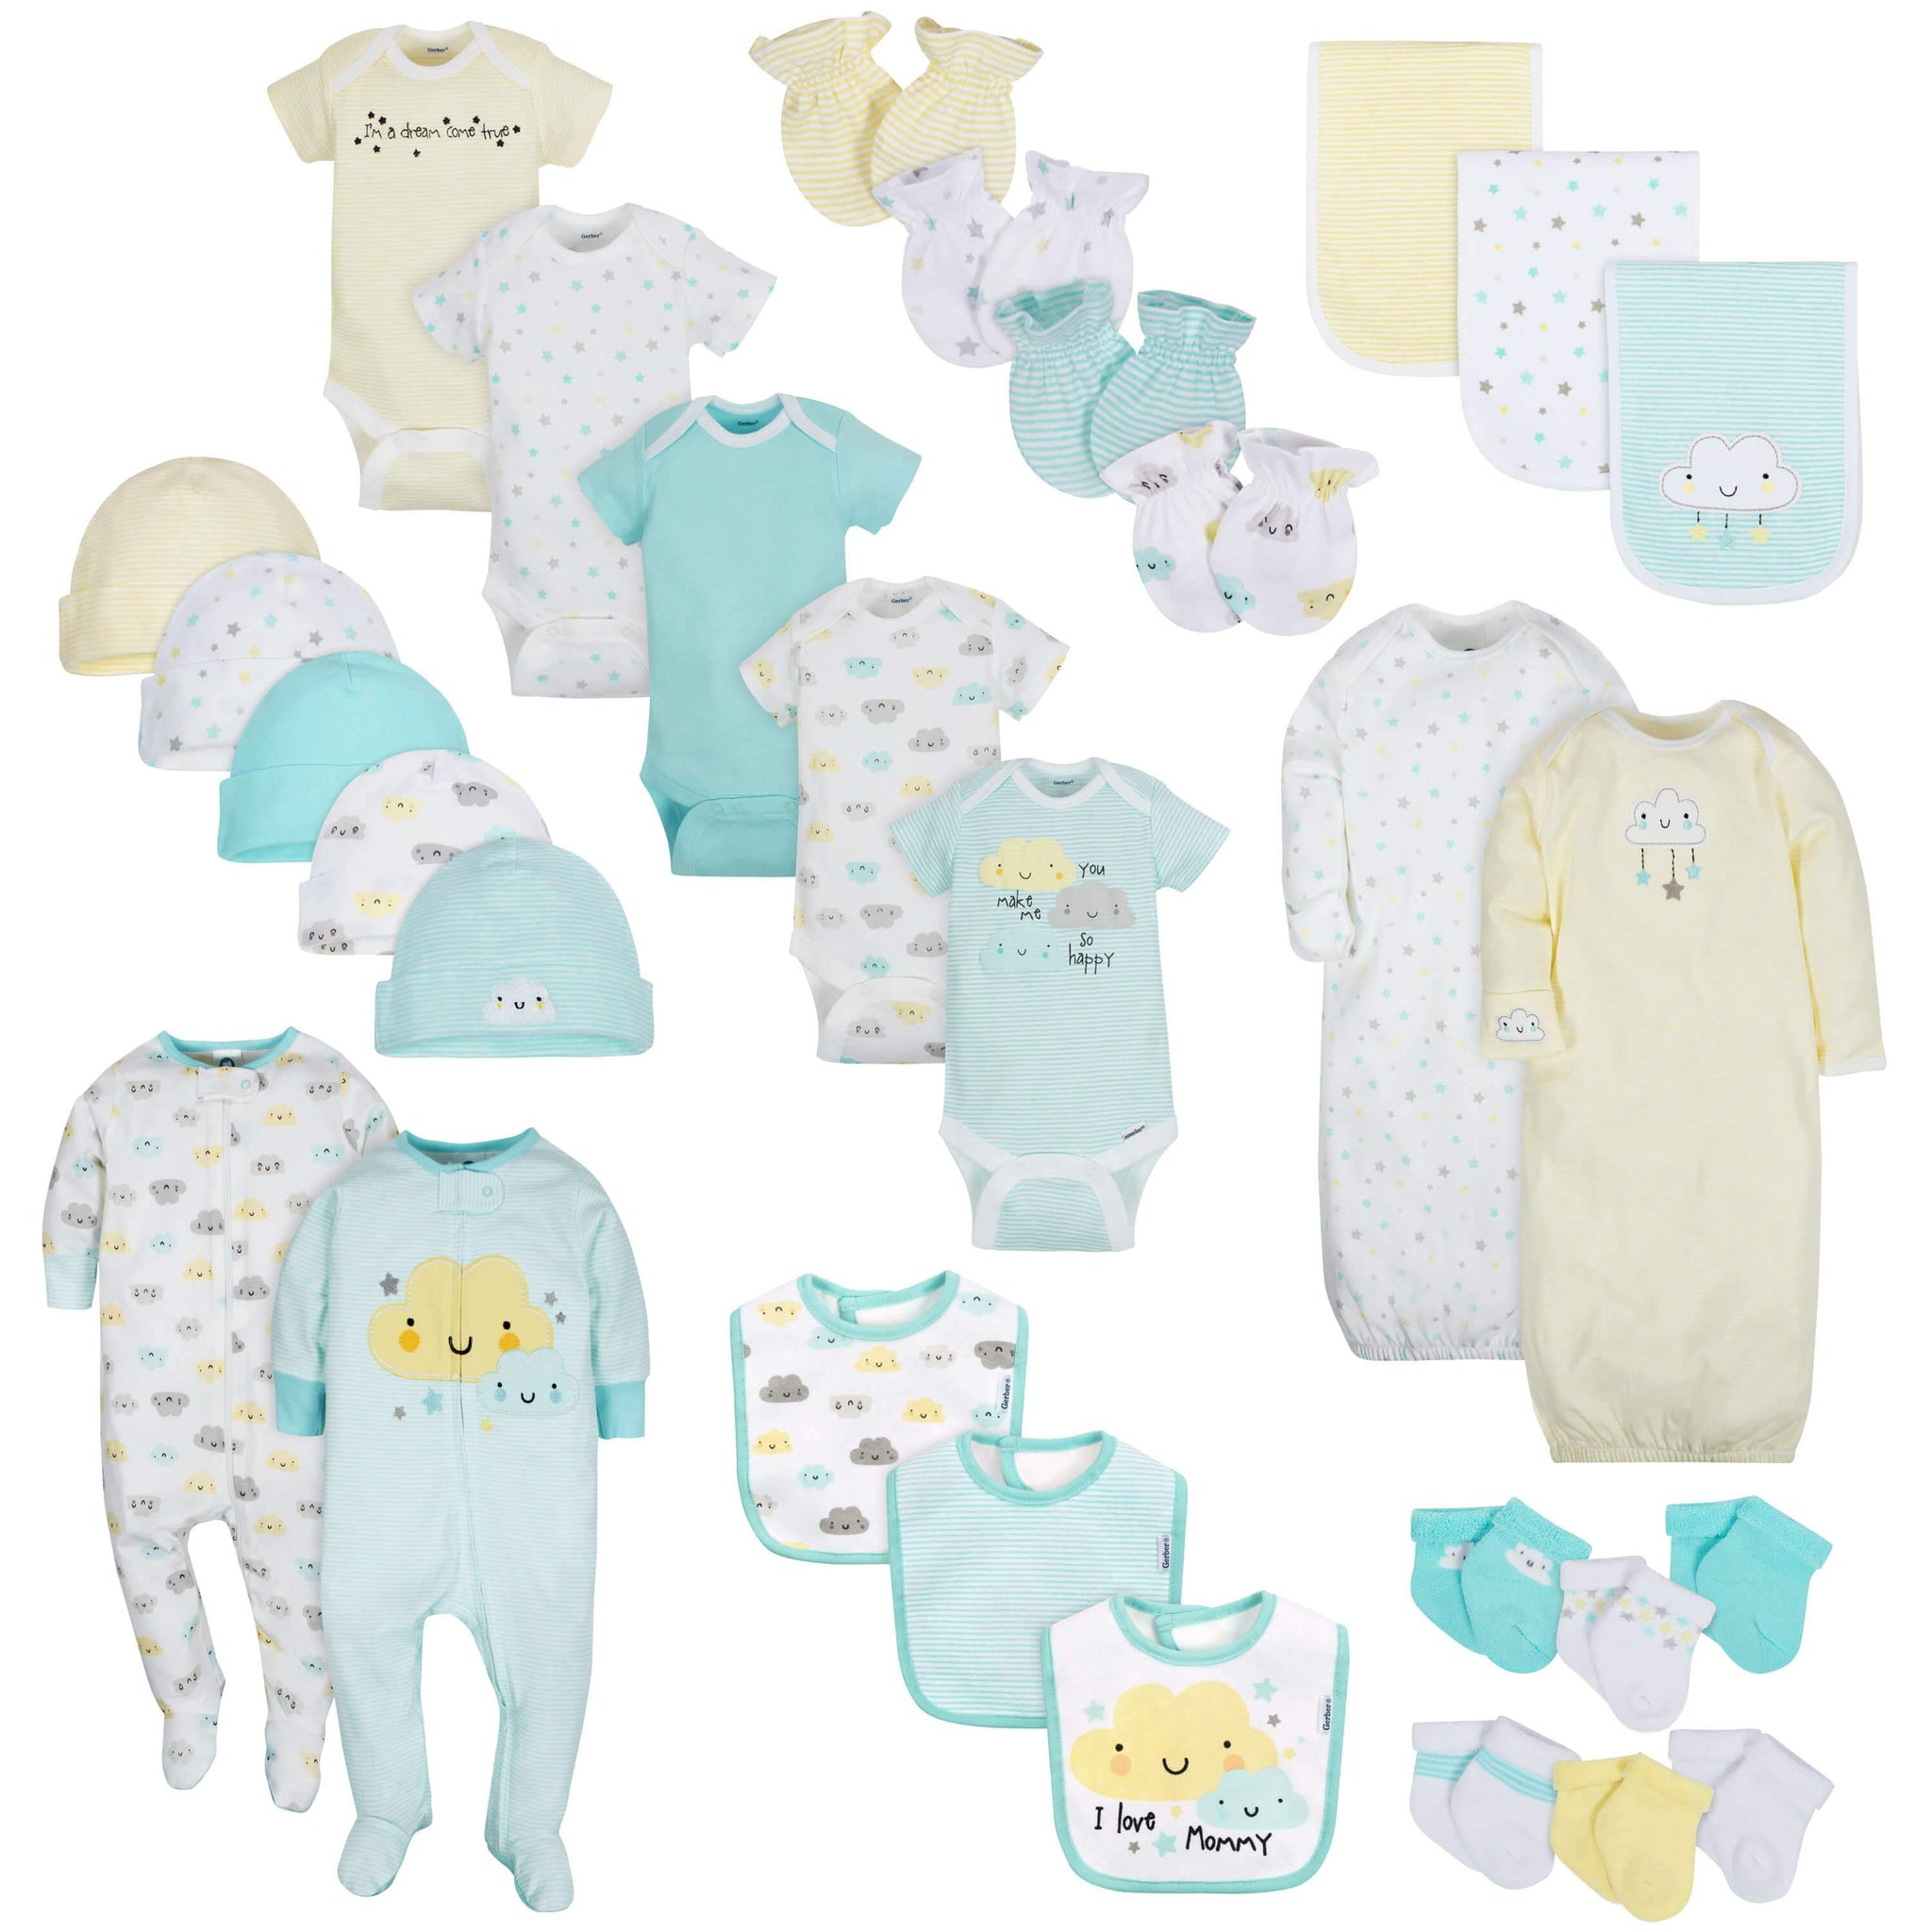 30-Piece Neutral Clouds Gift Set